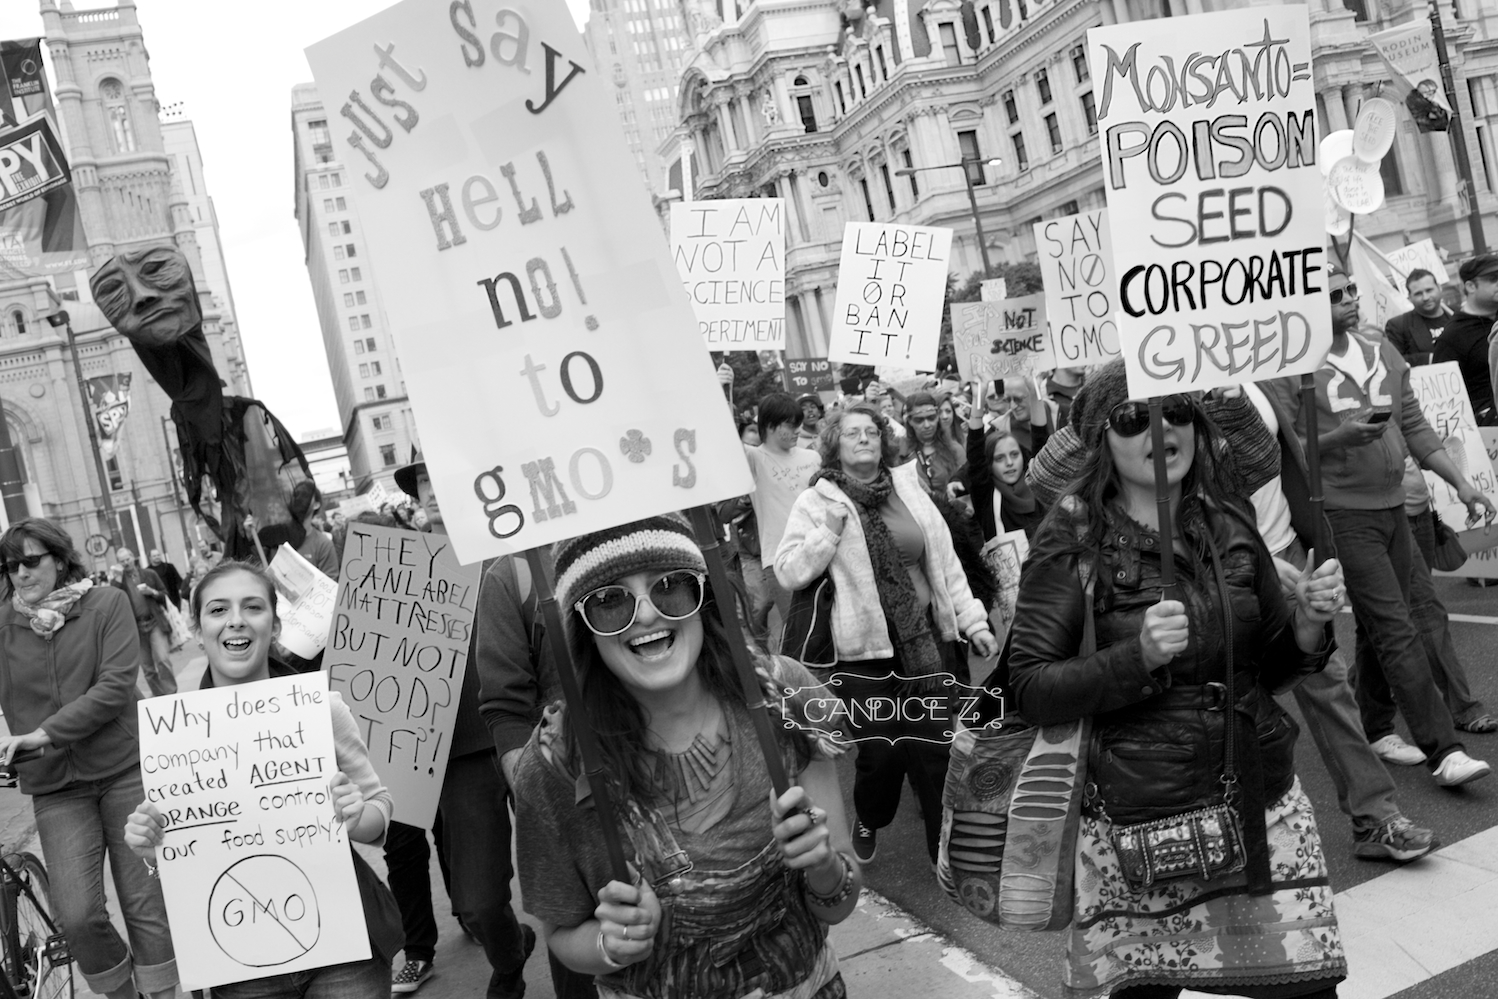 march against monsanto philaldelphia 2013